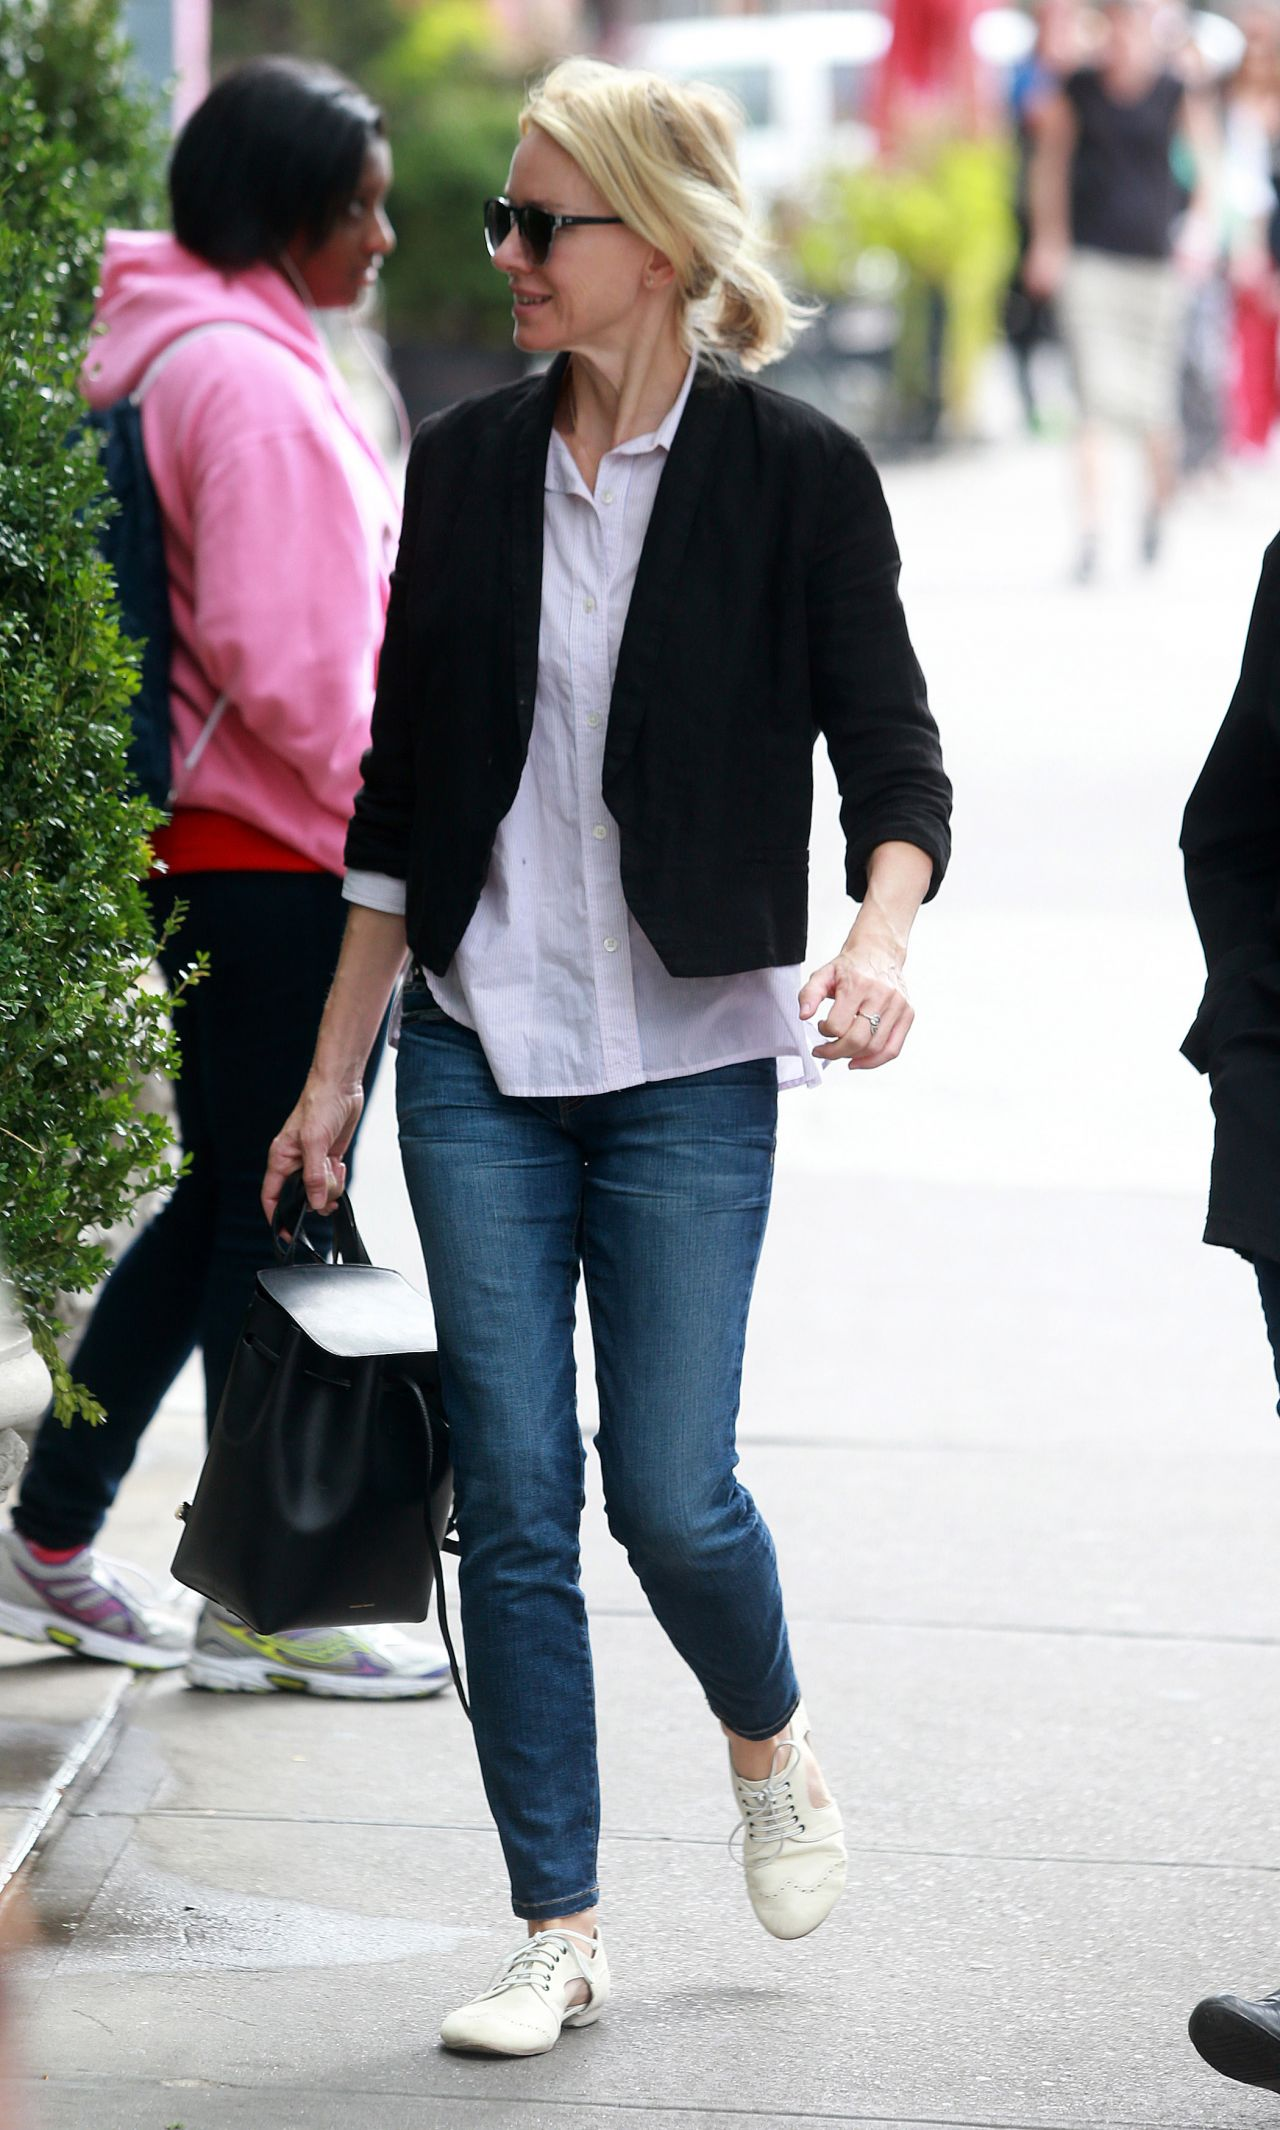 Naomi Watts Street Style – Out With Her Mom in New York City, September 2015